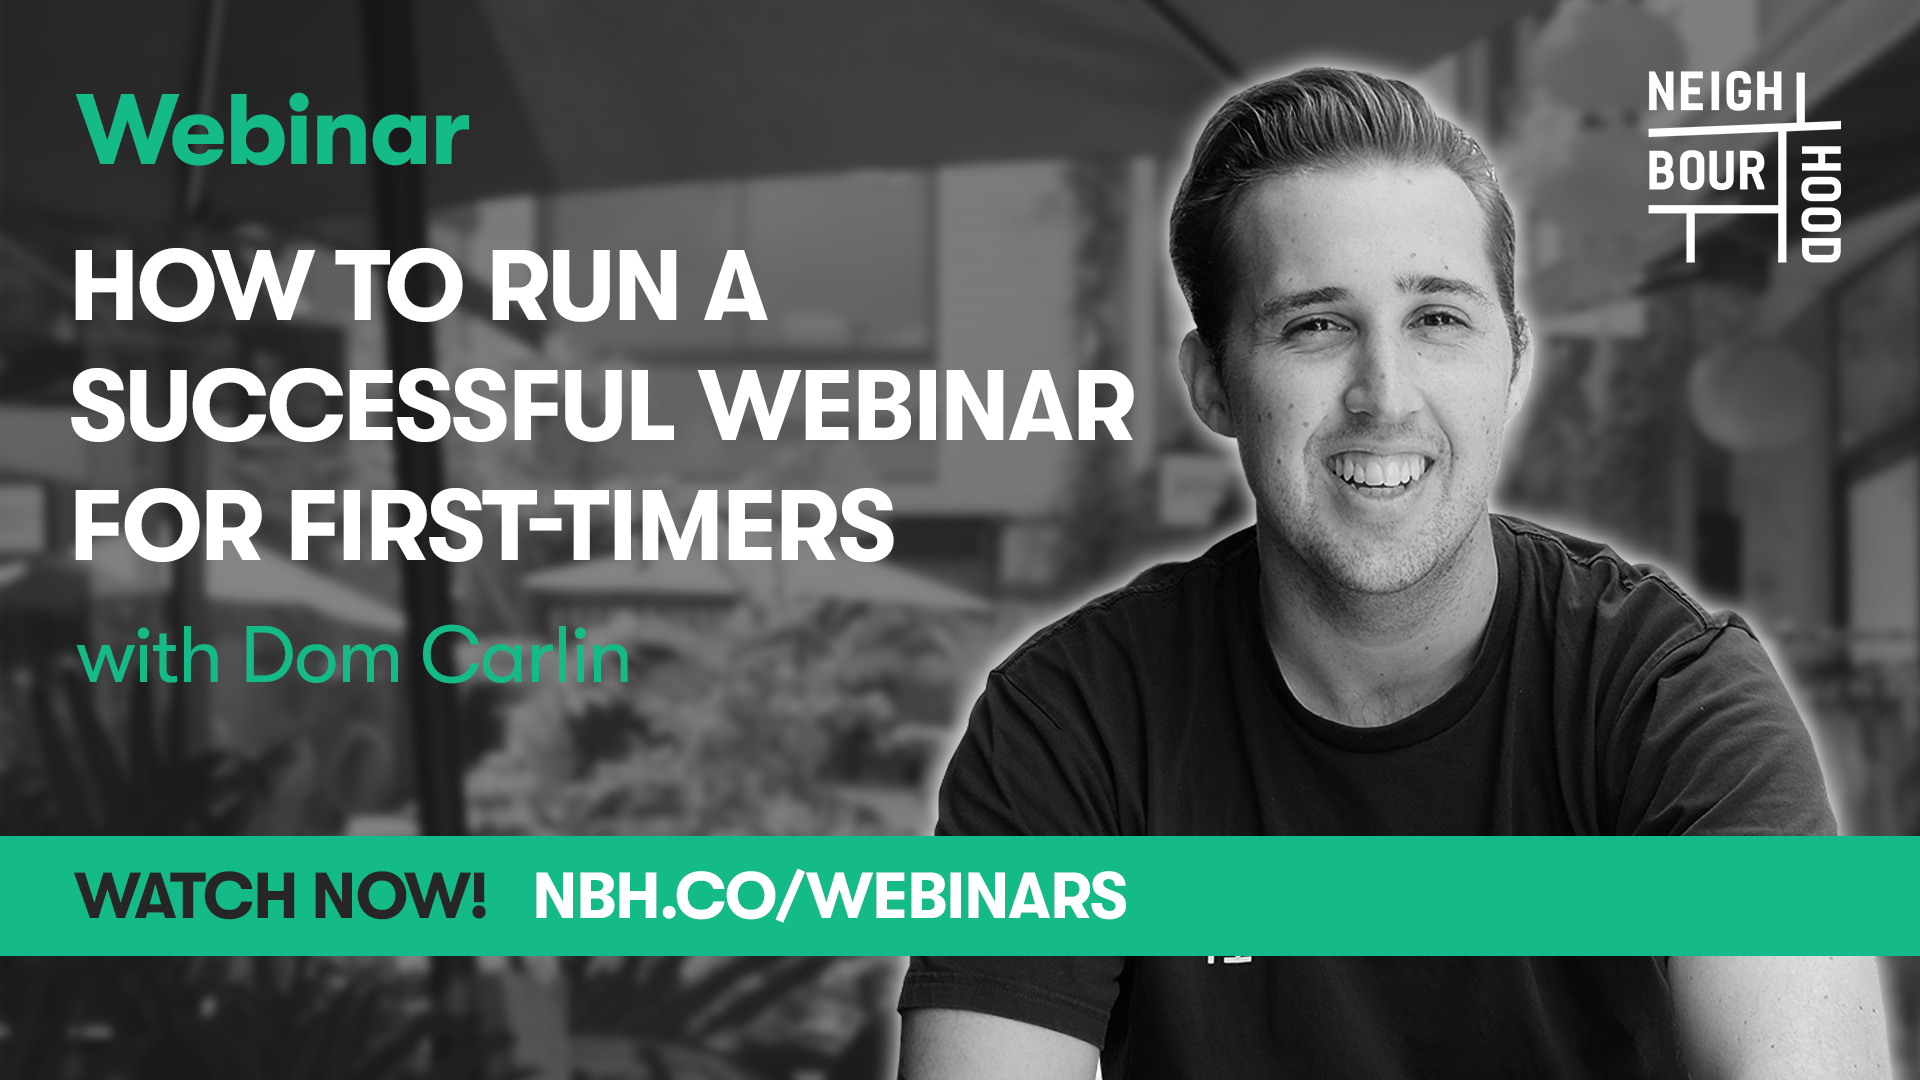 How to Run a Successful Webinar for First-Timers